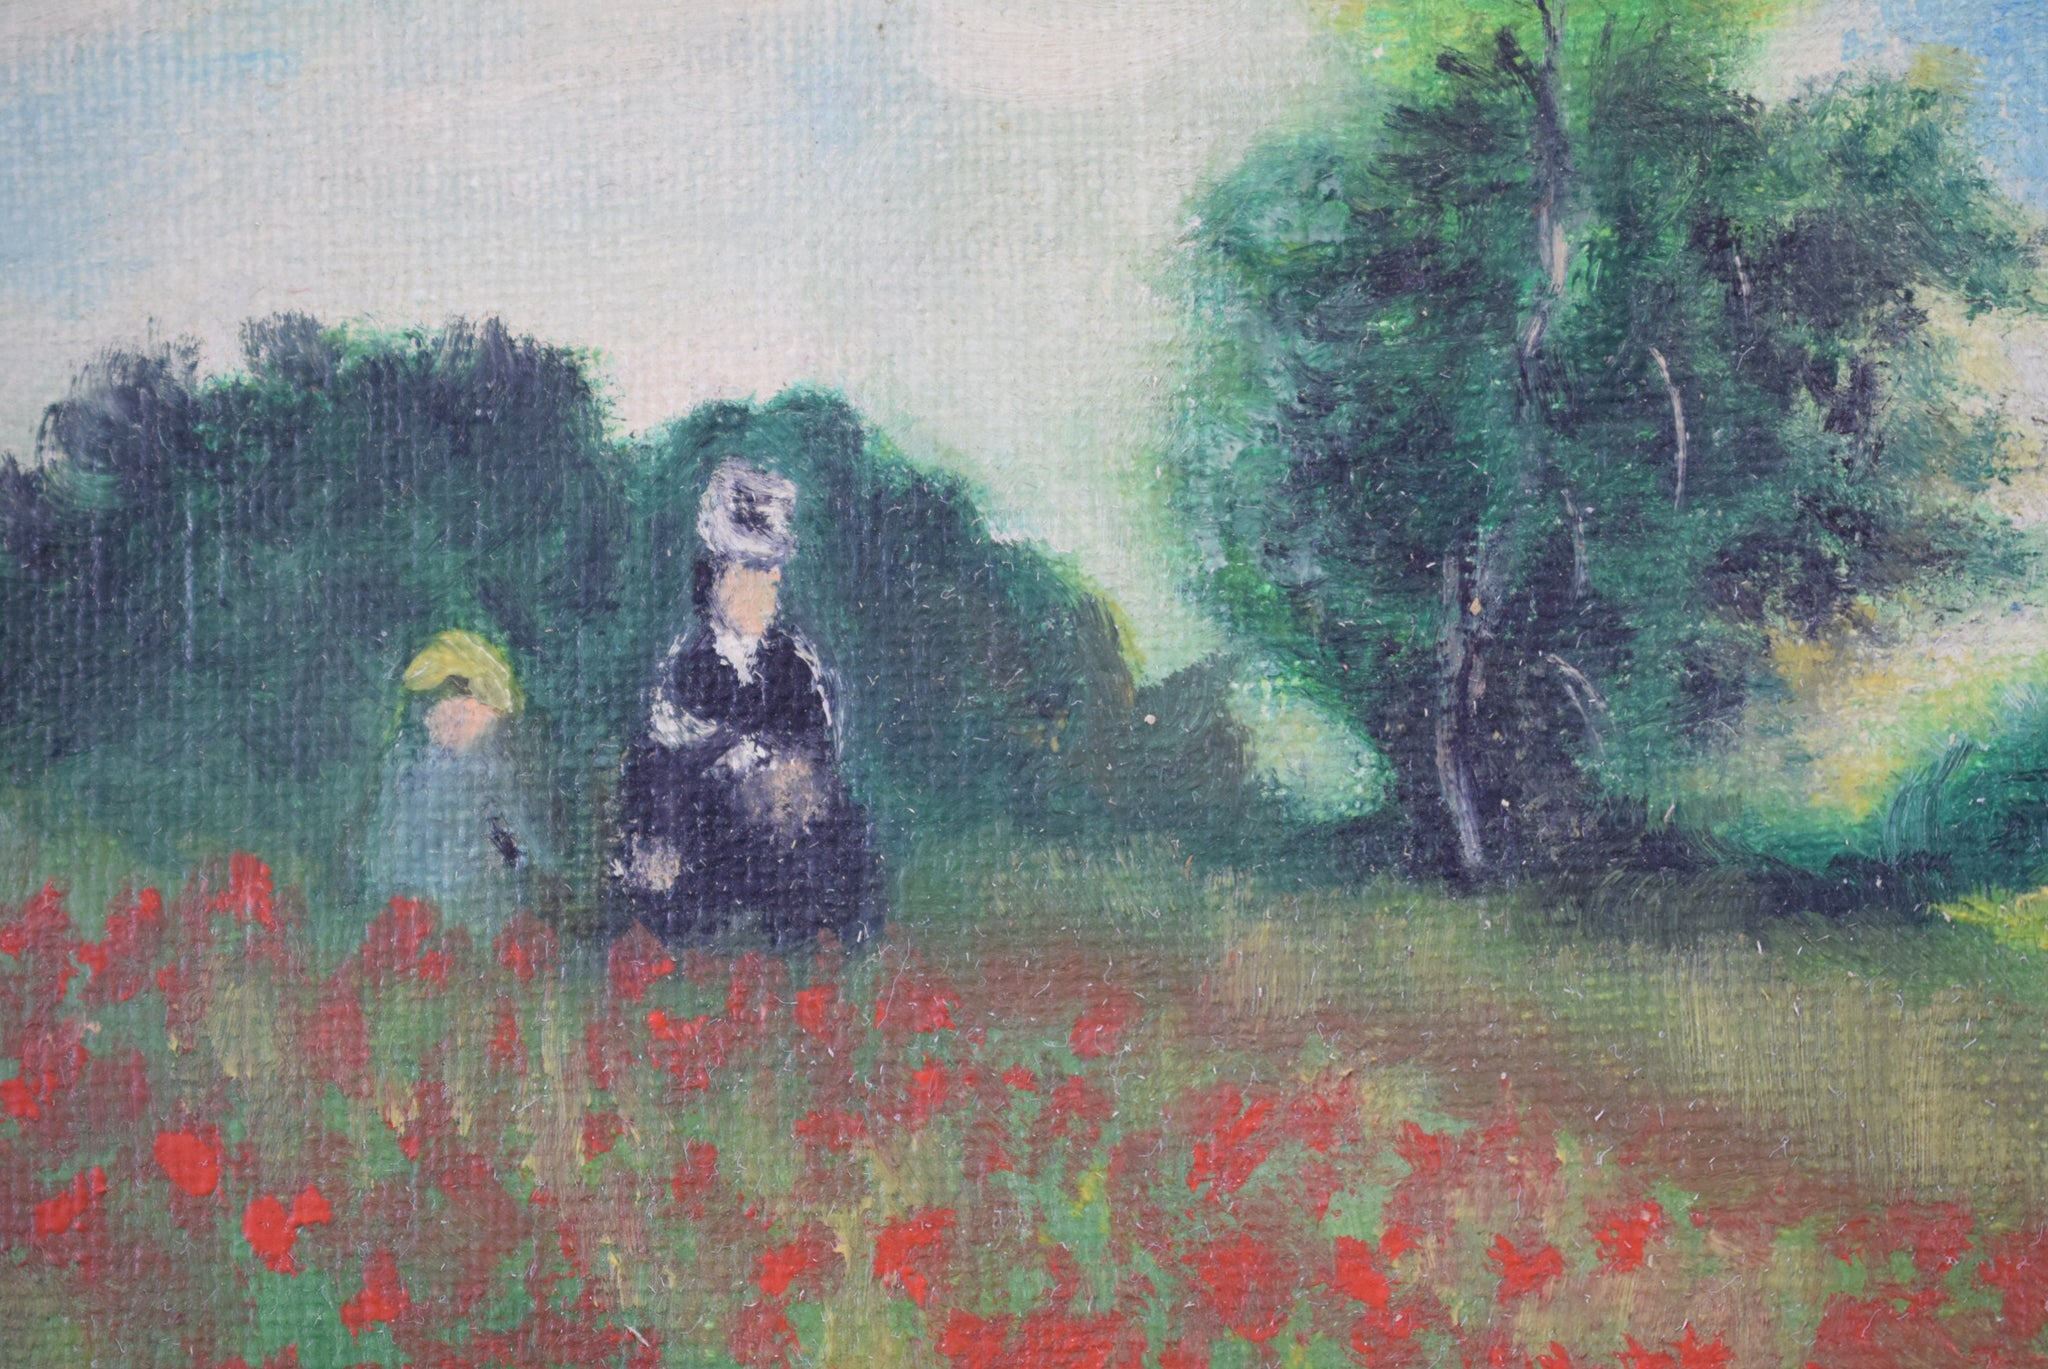 Poppy of Claude Monet French Vintage Oil Painting on Canvas Signed Poppy Field